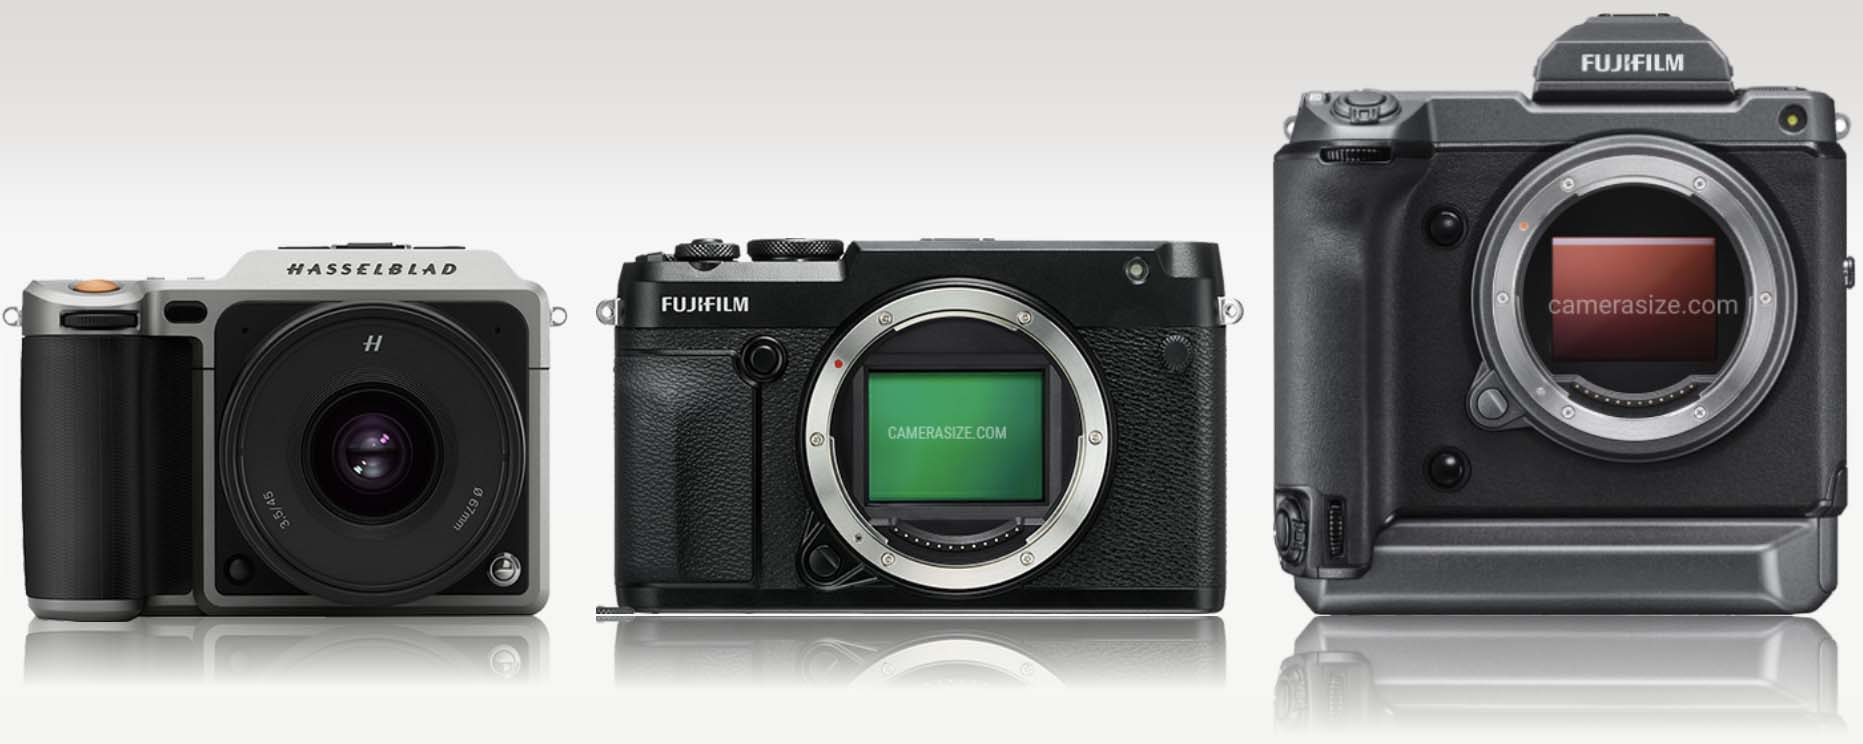 Hasselblad X1D II 50C Announced With Updated Processor - Finally